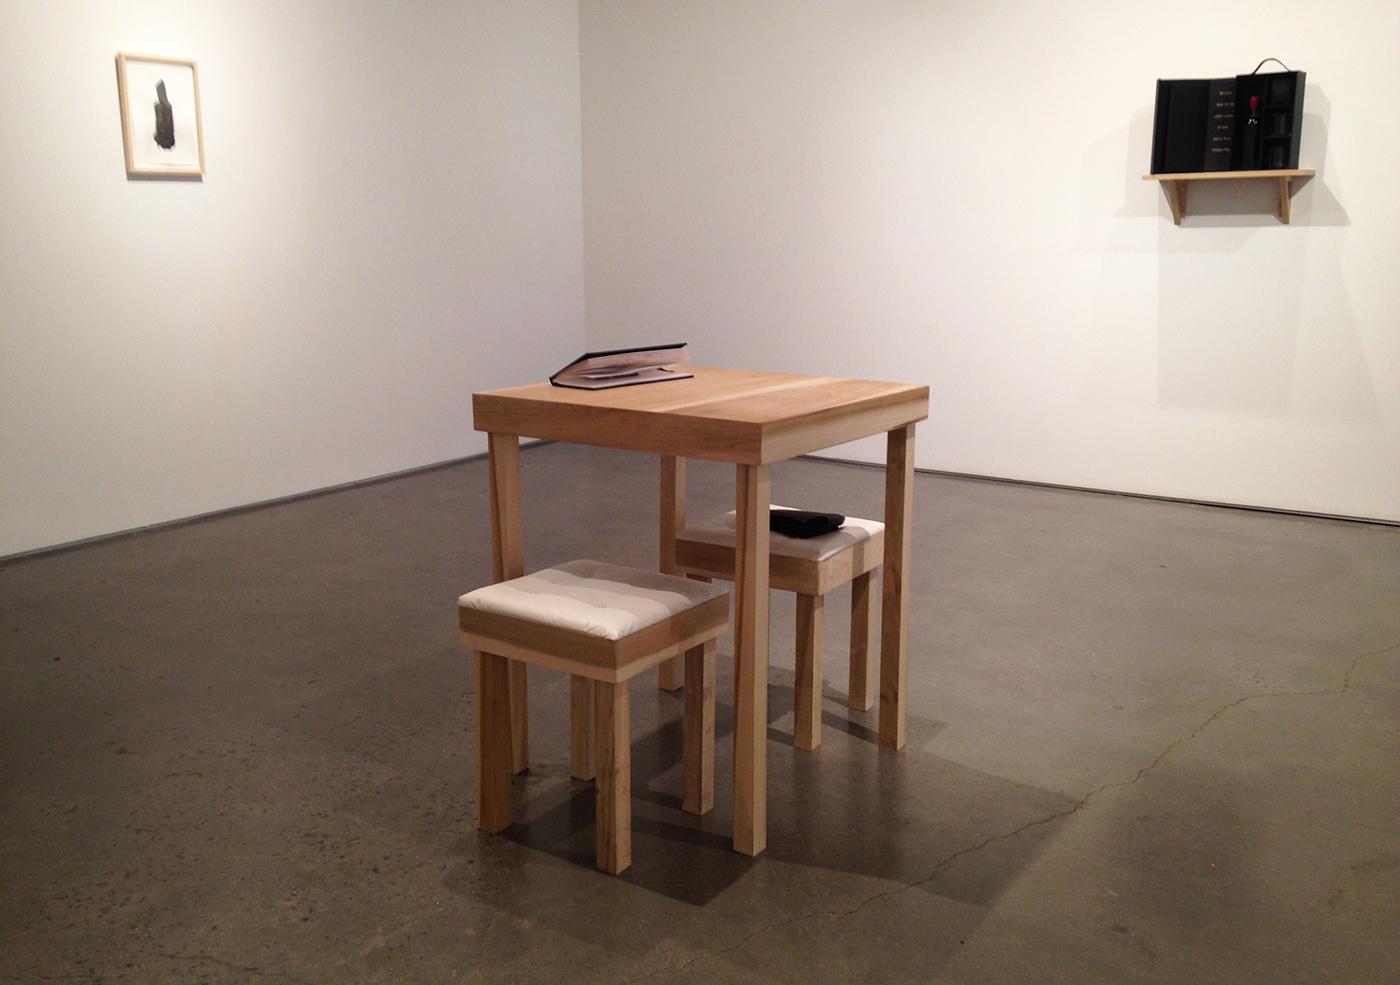 The drinking table, empty between pairs of participants